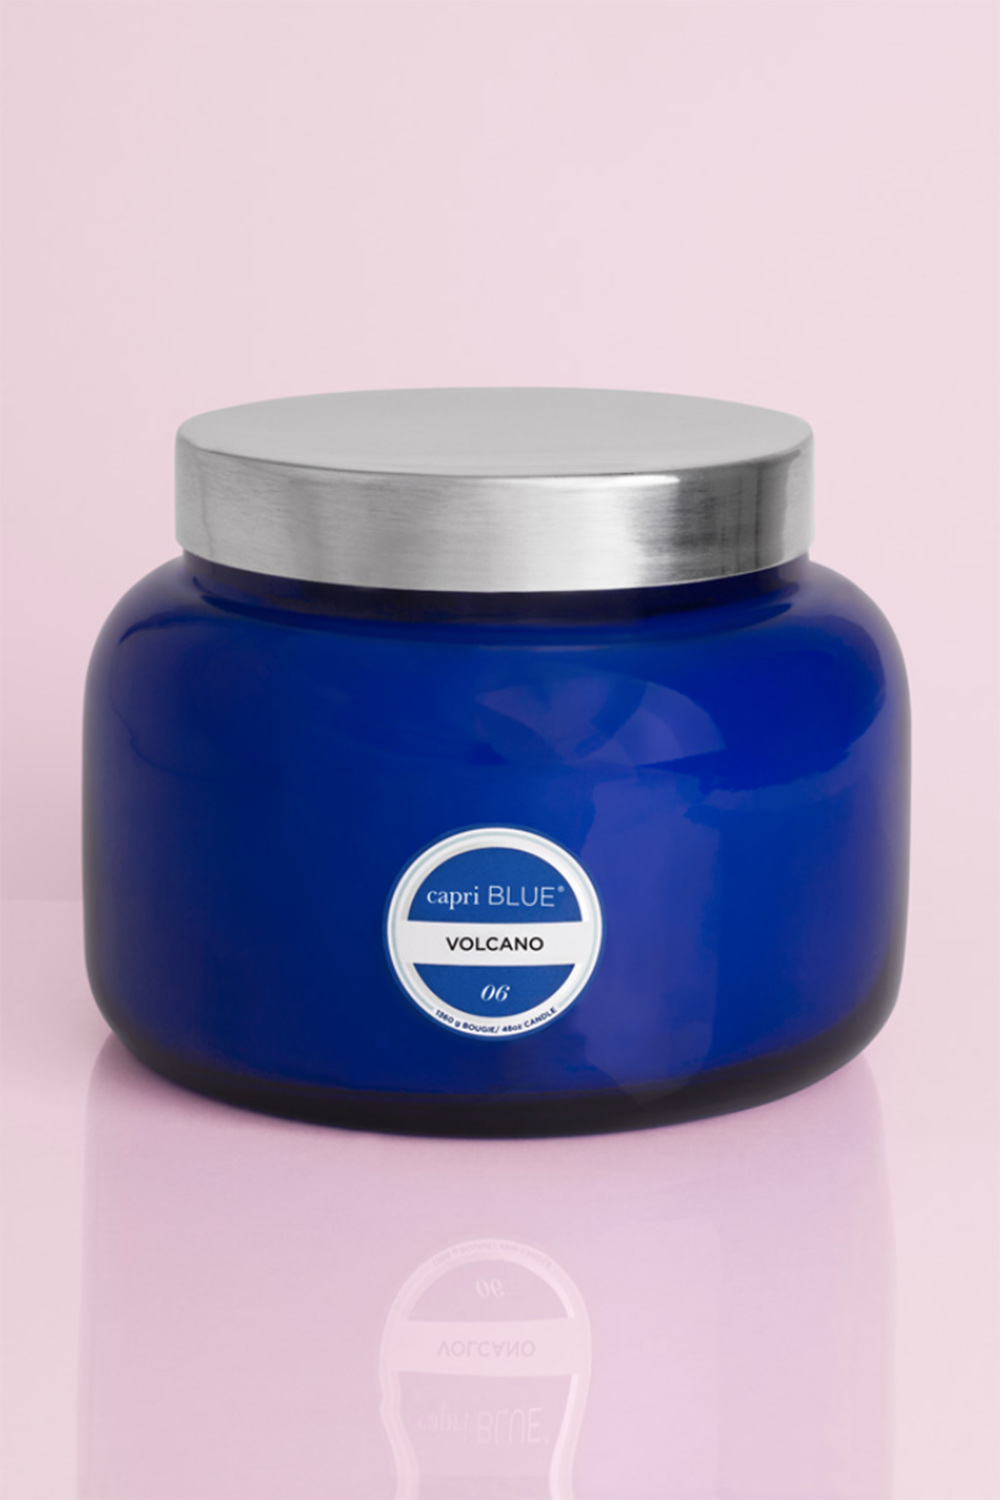 Jumbo Signature Candle - Volcano - Blue